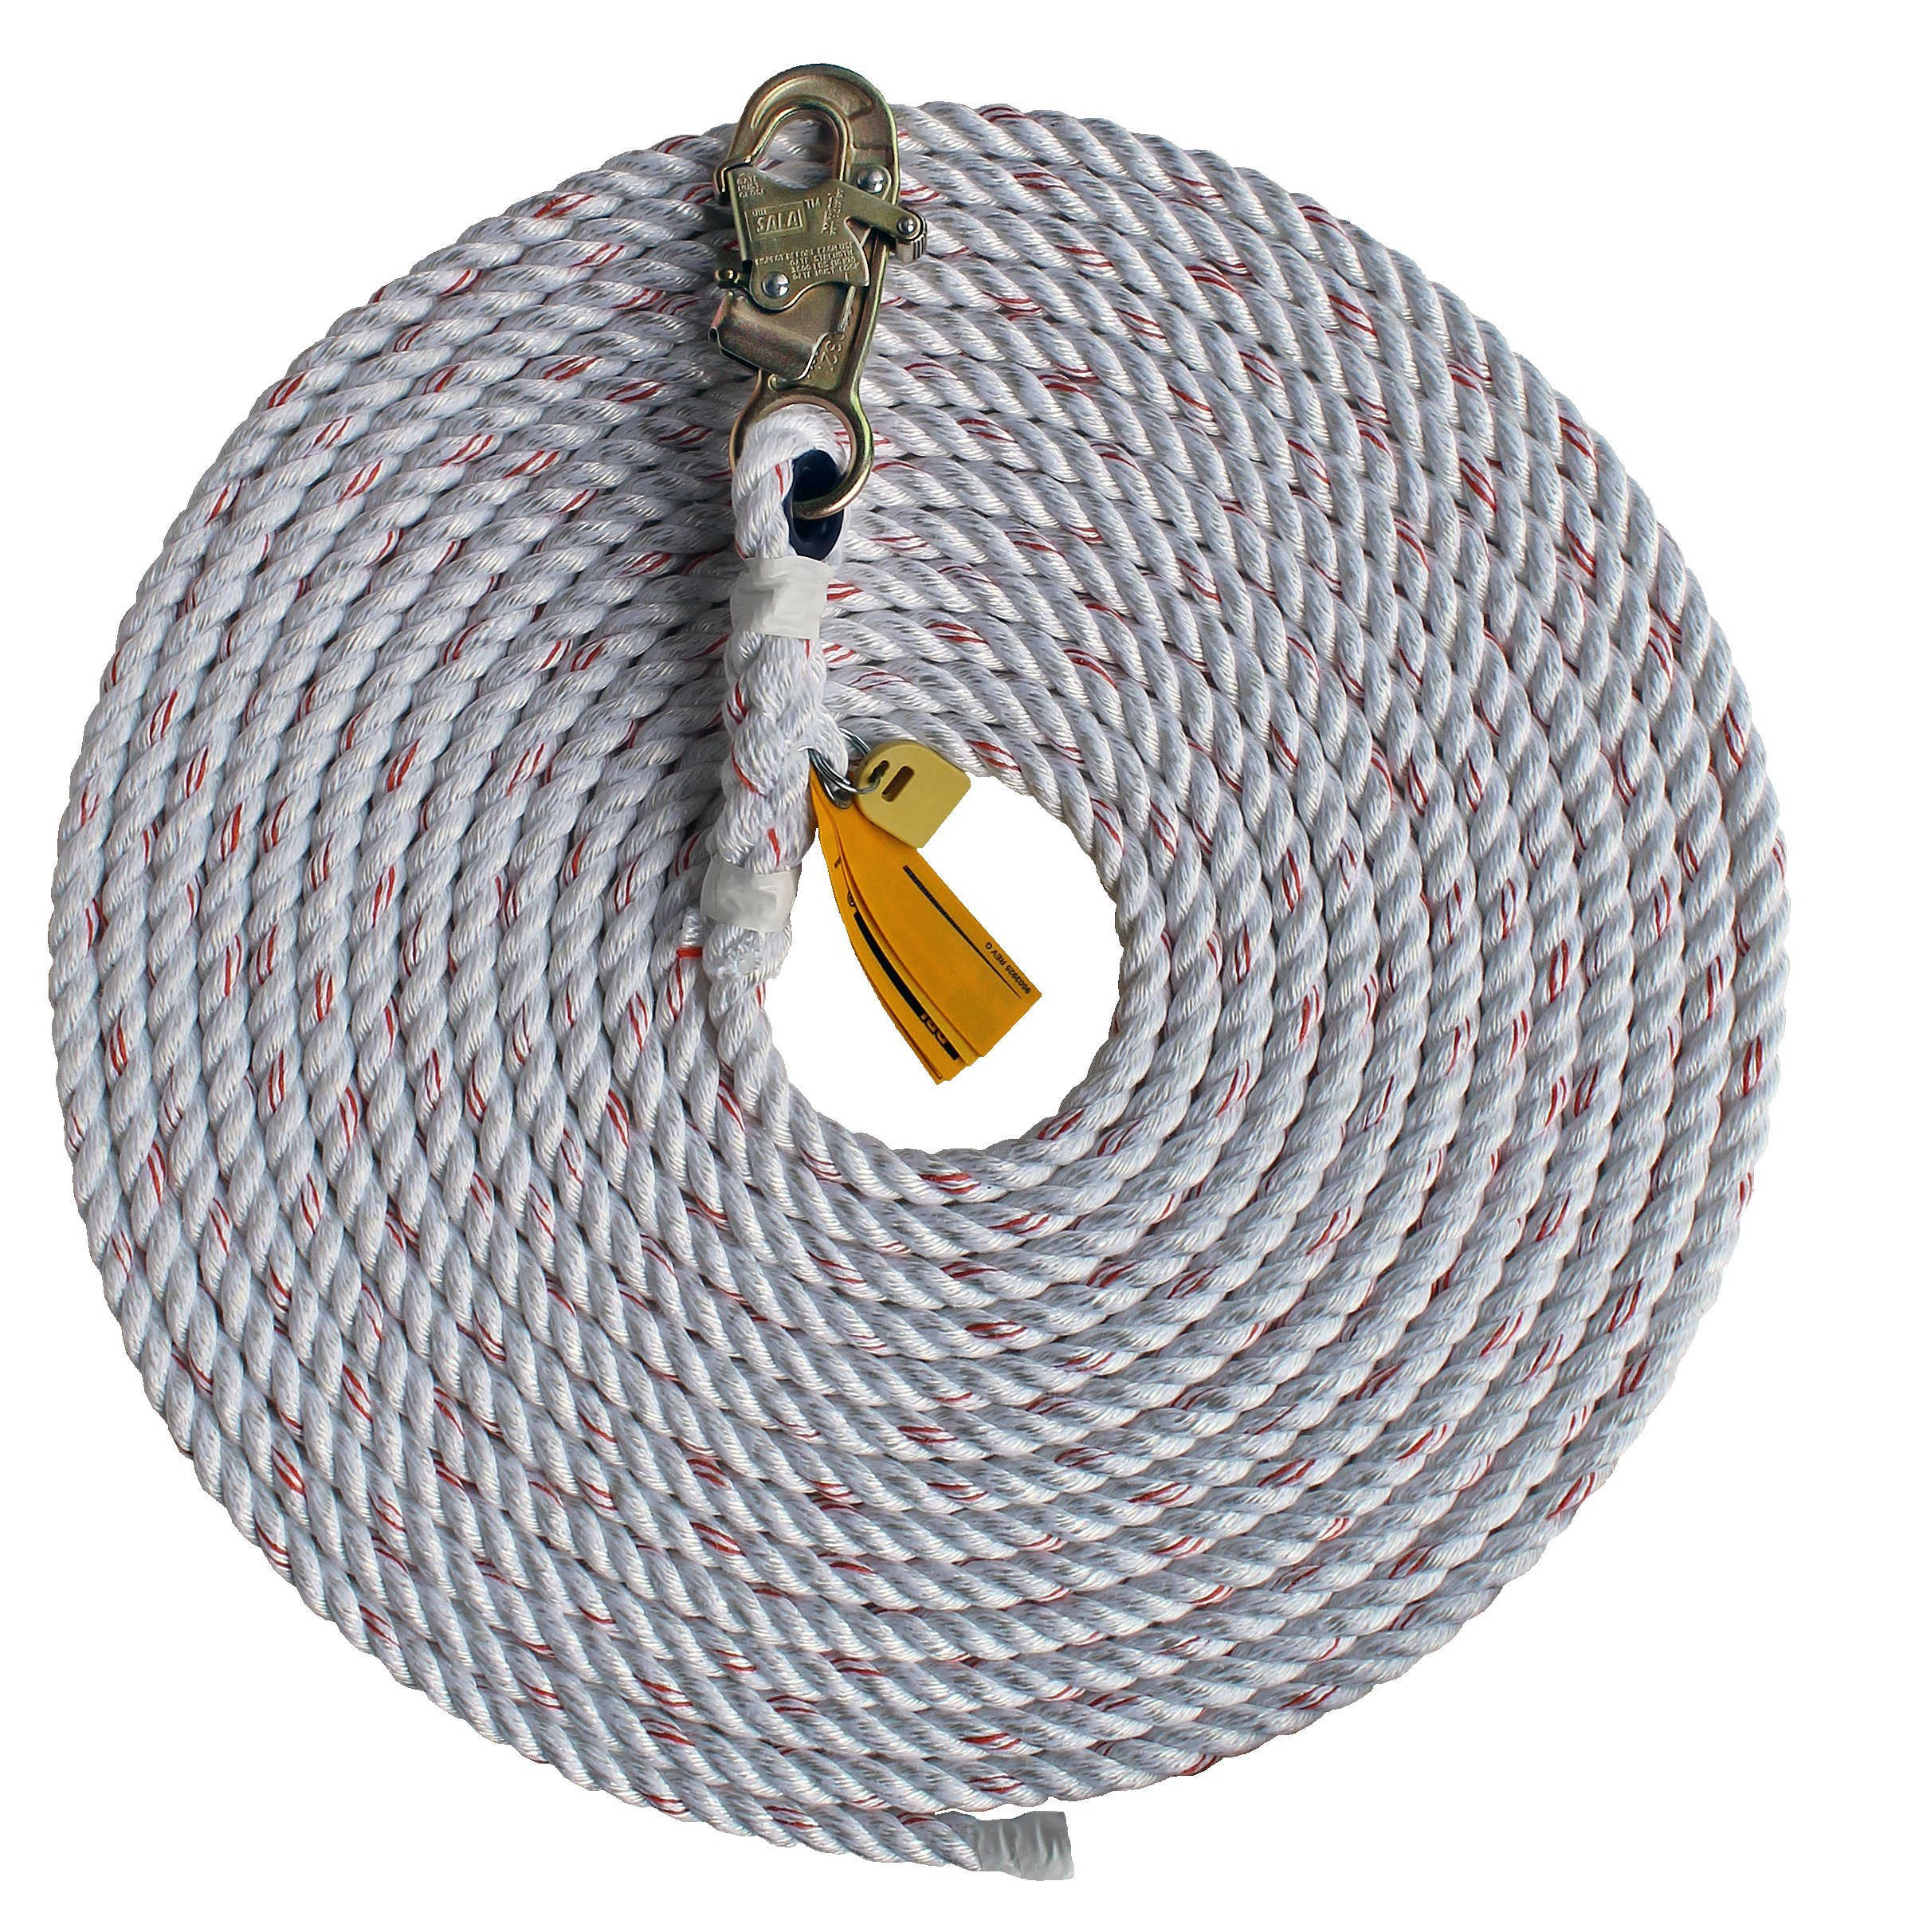 3M DBI-SALA 1202754 Vertical Systems, 5/8'' Polyester Polypropylene, 30' Rope Lifeline, with Snaphook, White with Orange Tracer